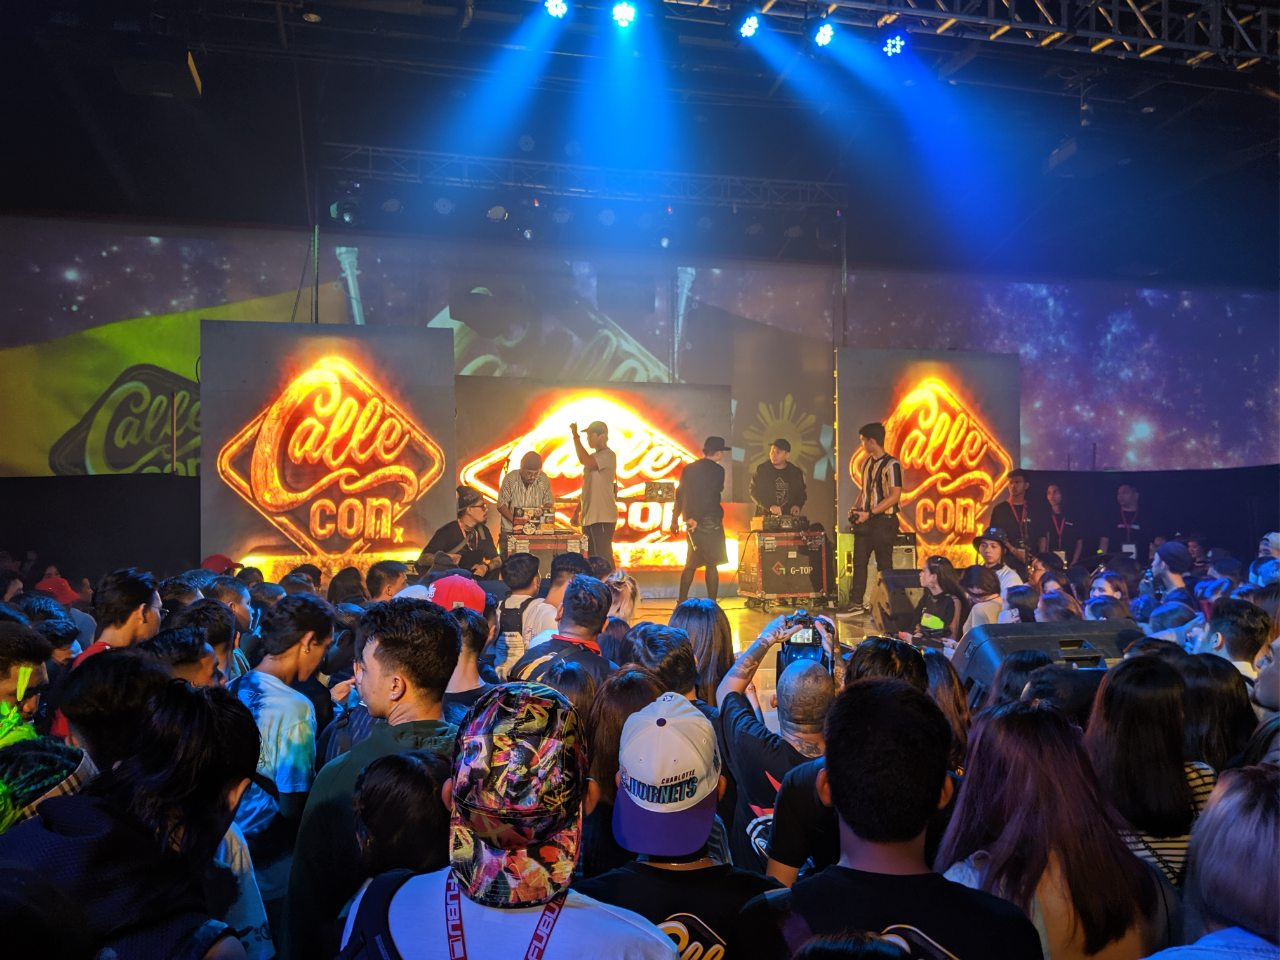 The best in Pinoy hip-hop gather at Calle Con 2019